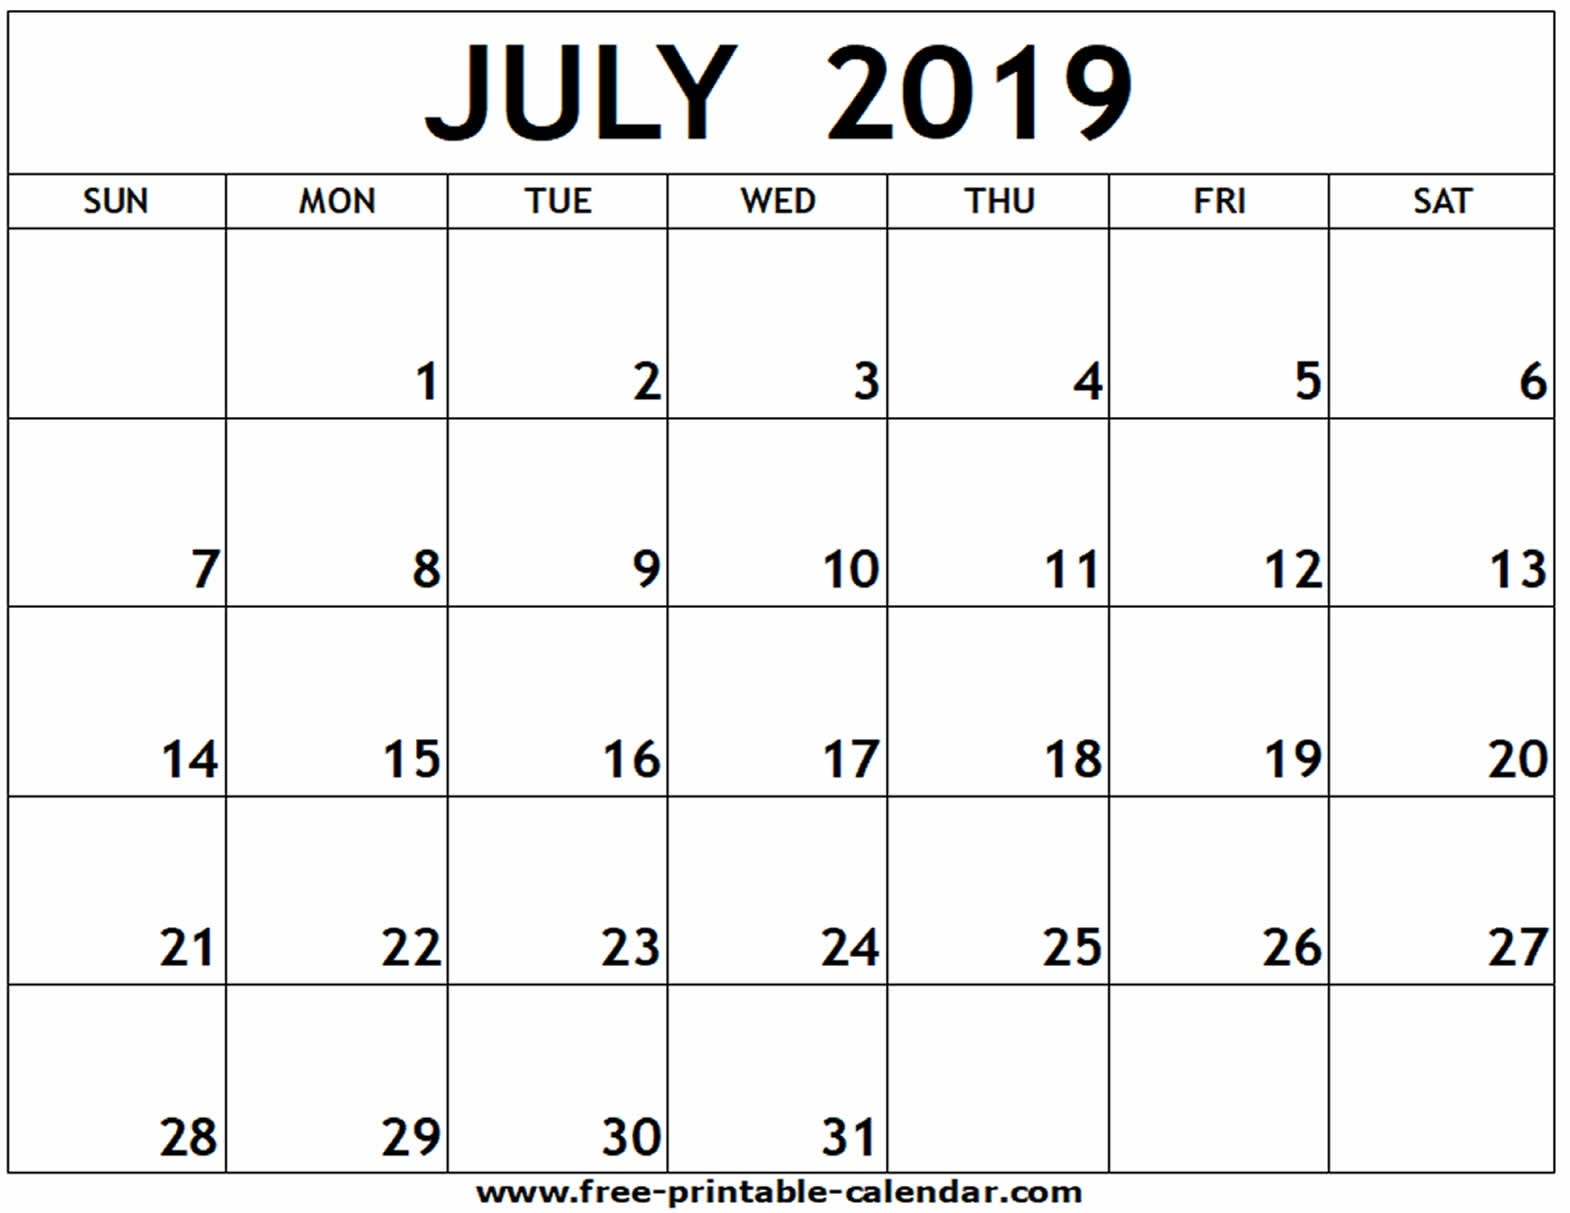 July 2019 Printable Calendar - Free-Printable-Calendar_Calendar For Printing July 2019